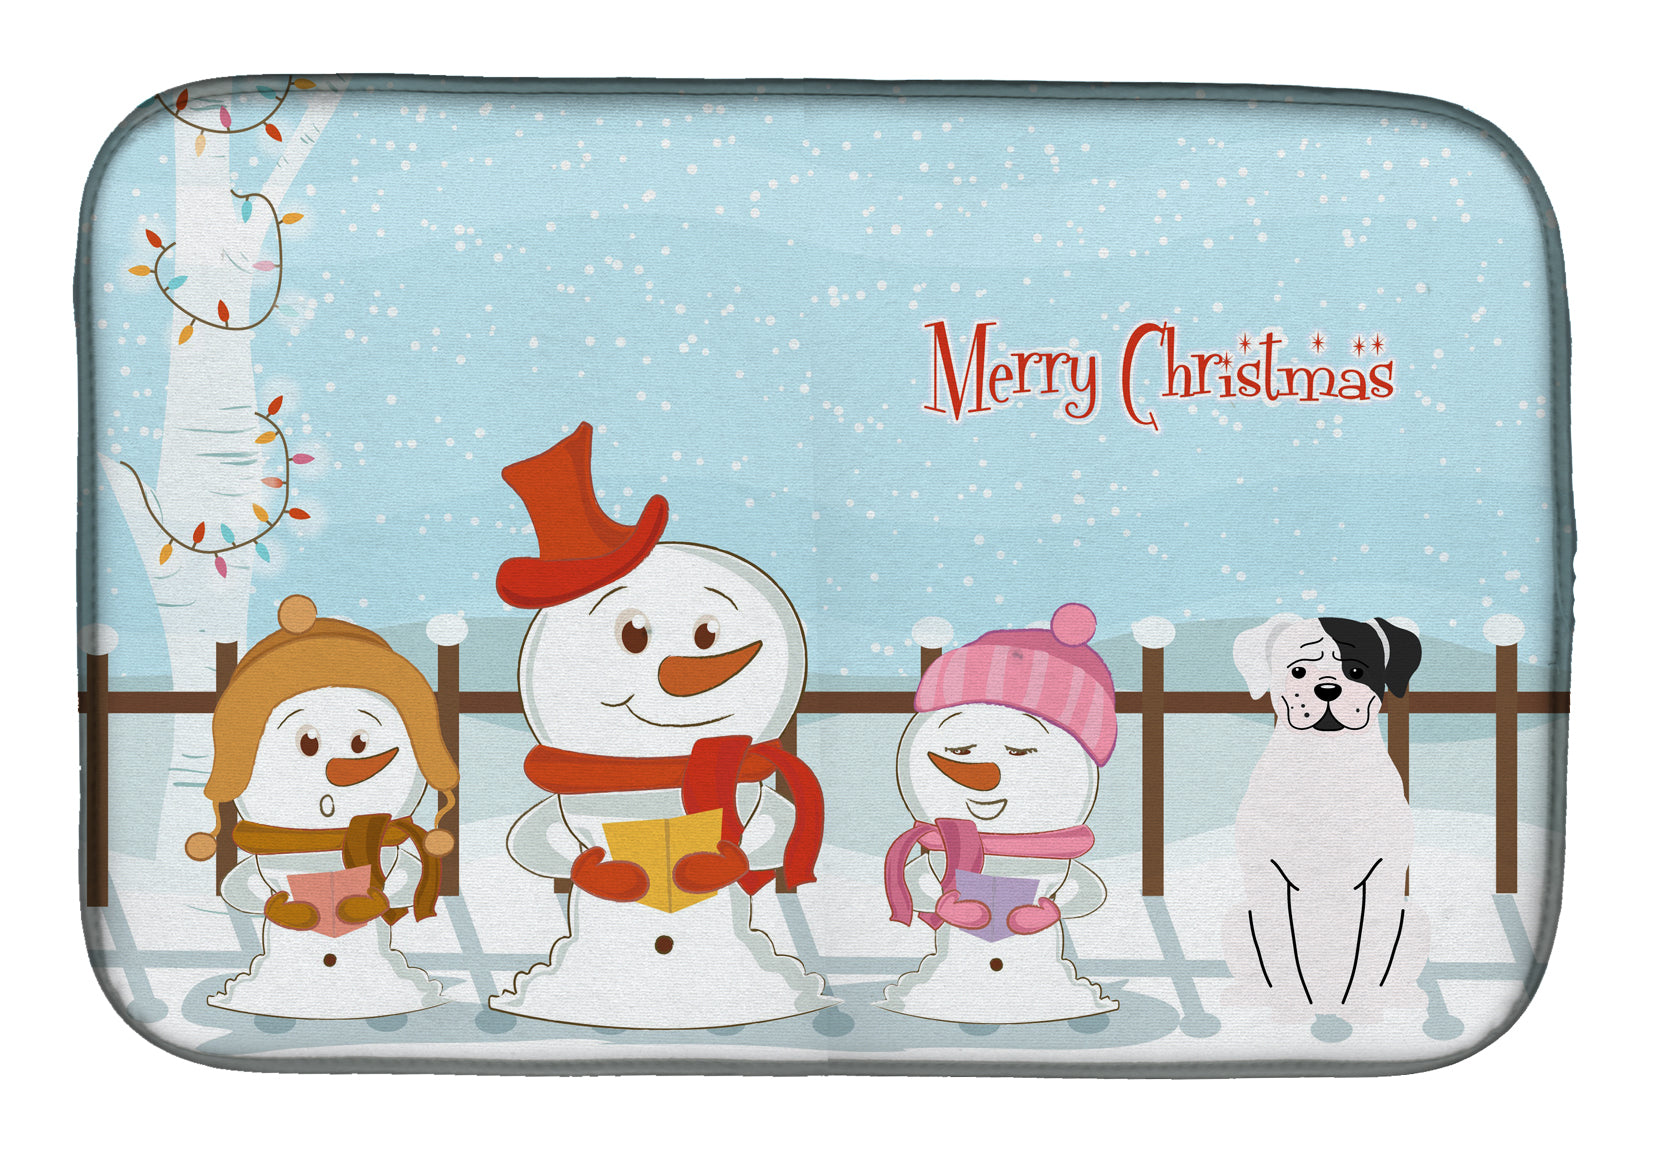 Merry Christmas Carolers White Boxer Cooper Dish Drying Mat BB2445DDM by Caroline's Treasures